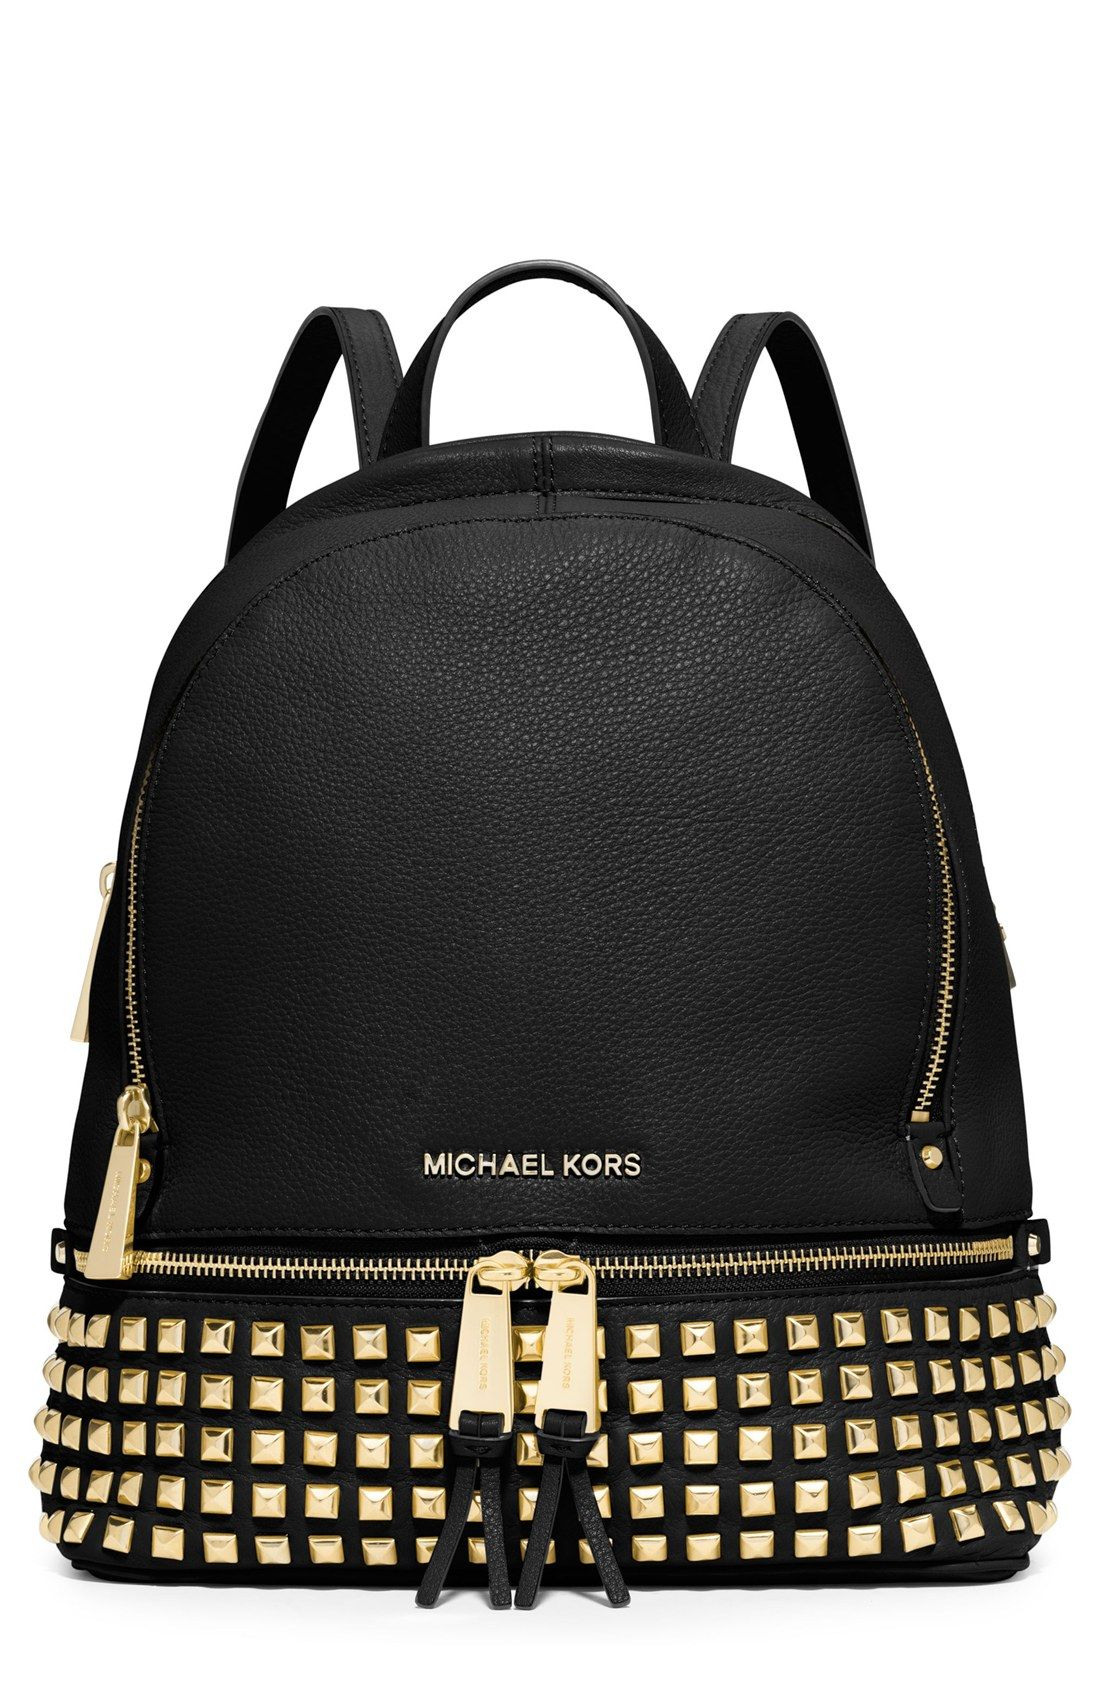 ed22bd1a1c81 Rows of gold pyramid studs and tasseled zippers give this Michael Kors  backpack a city chic edge.